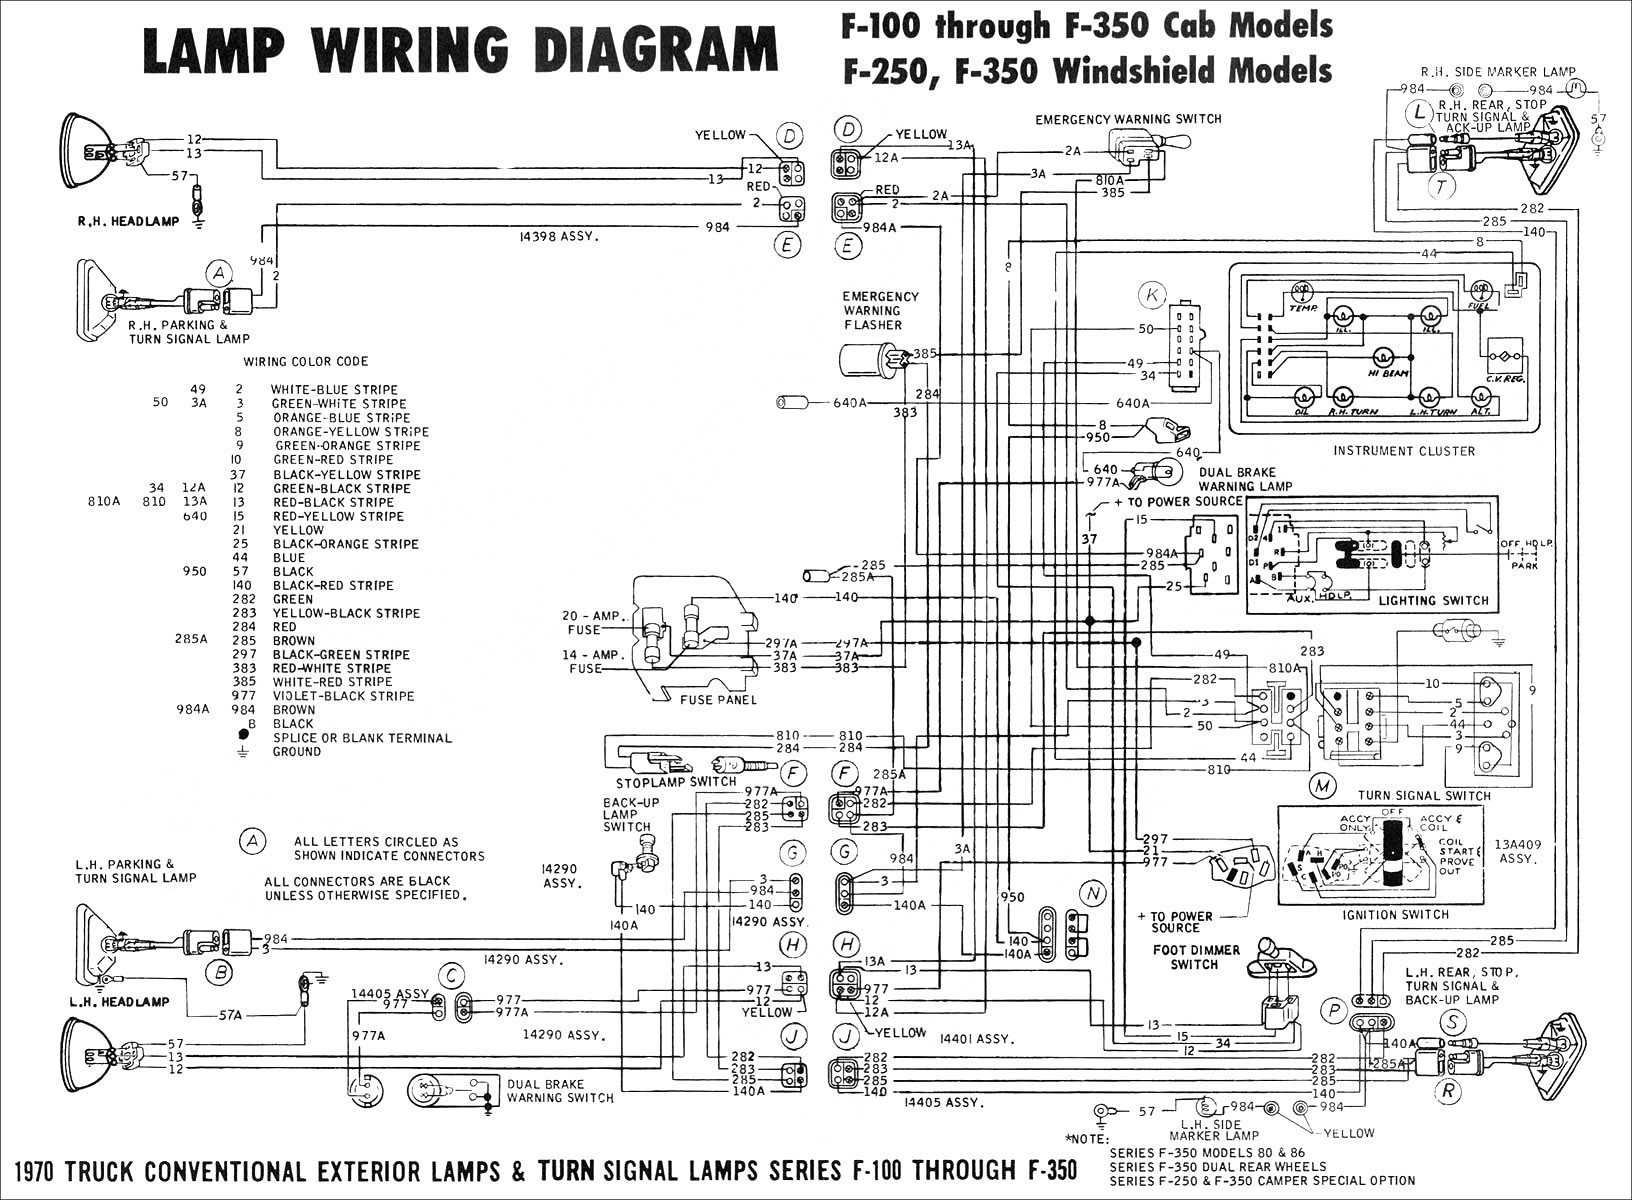 2005 chevy 2500 roof light wiring diagram toyota tacoma trailer wiring diagram | free wiring diagram ta2000 wiring diagram